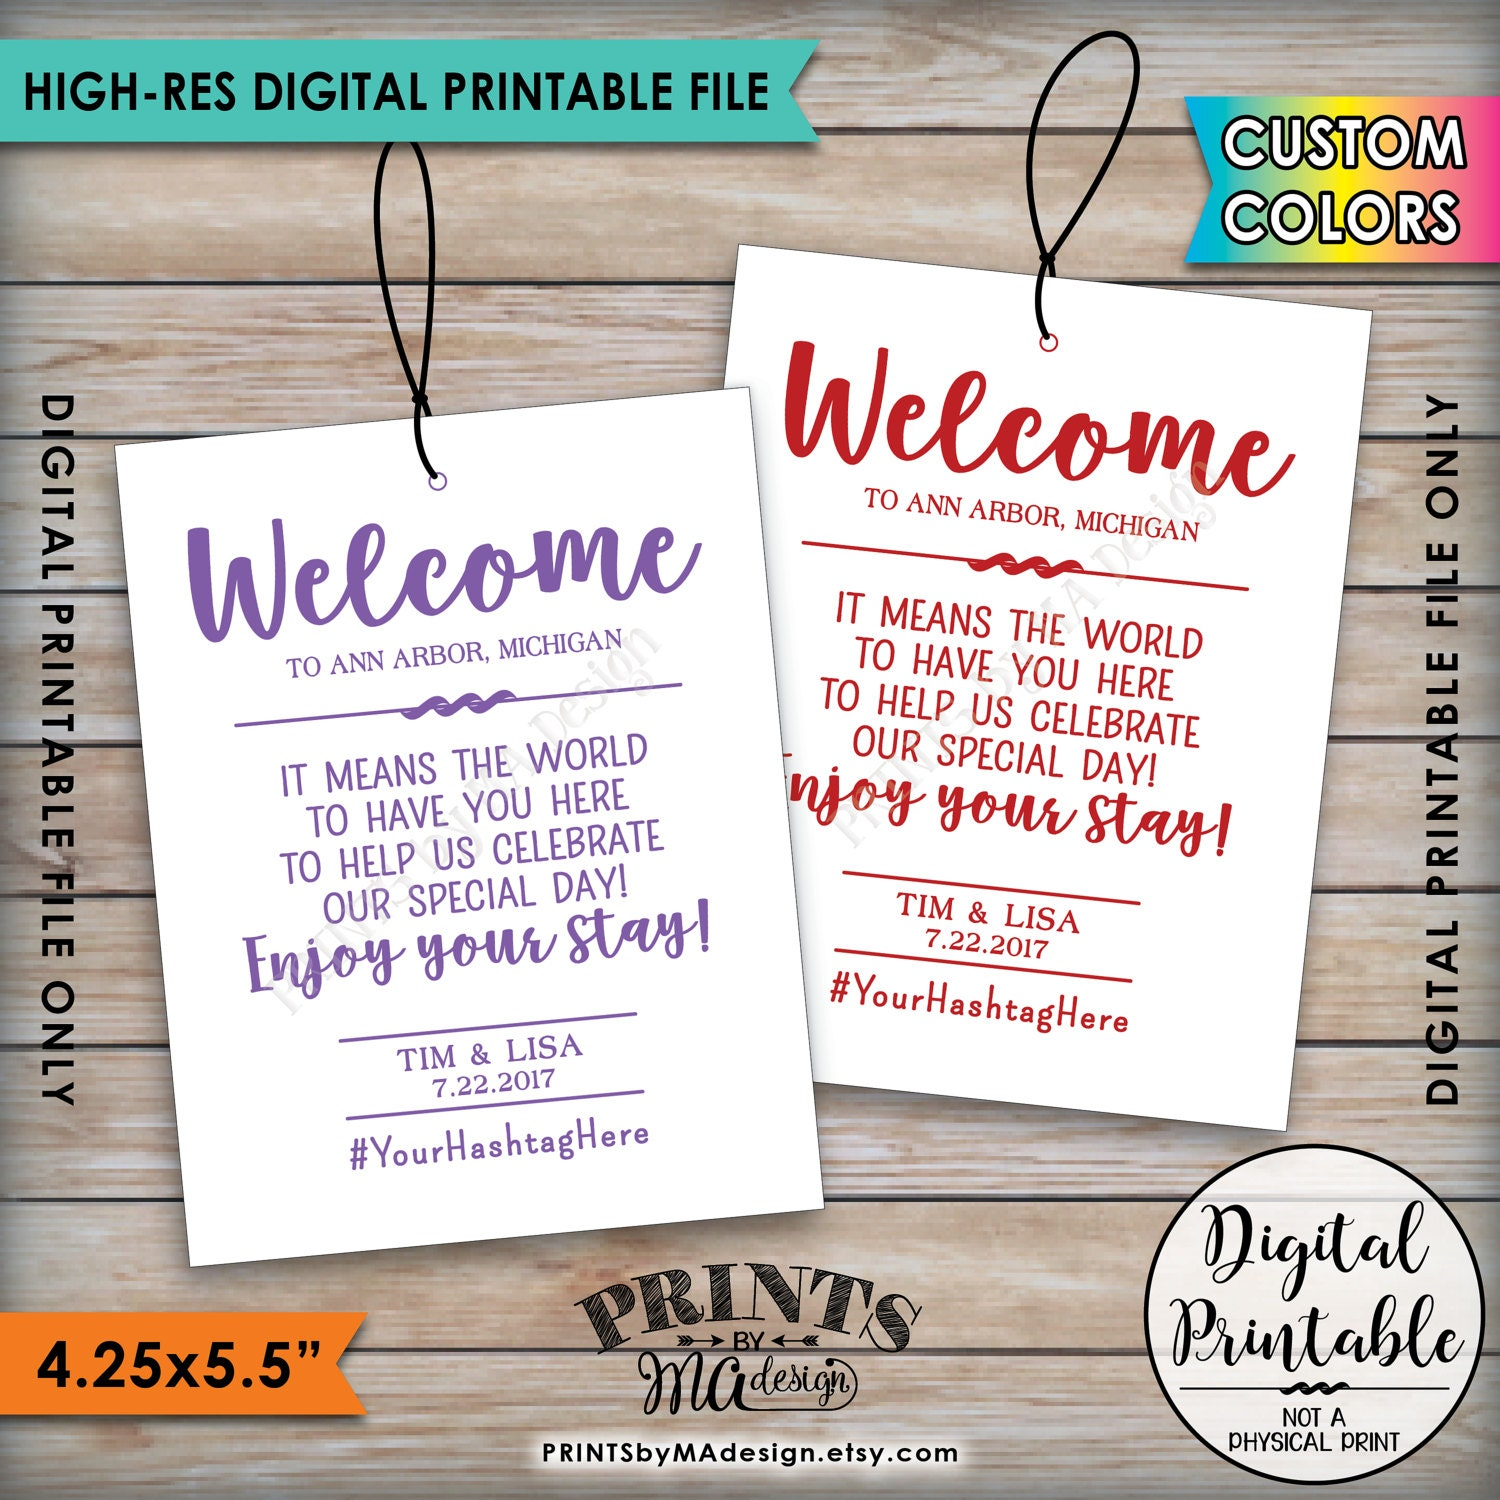 Wedding Welcome Bag Tags Hotel Labels Out Of Town Destination Thank You Hashtag Color 425x55 Per PRINTABLE 85x11